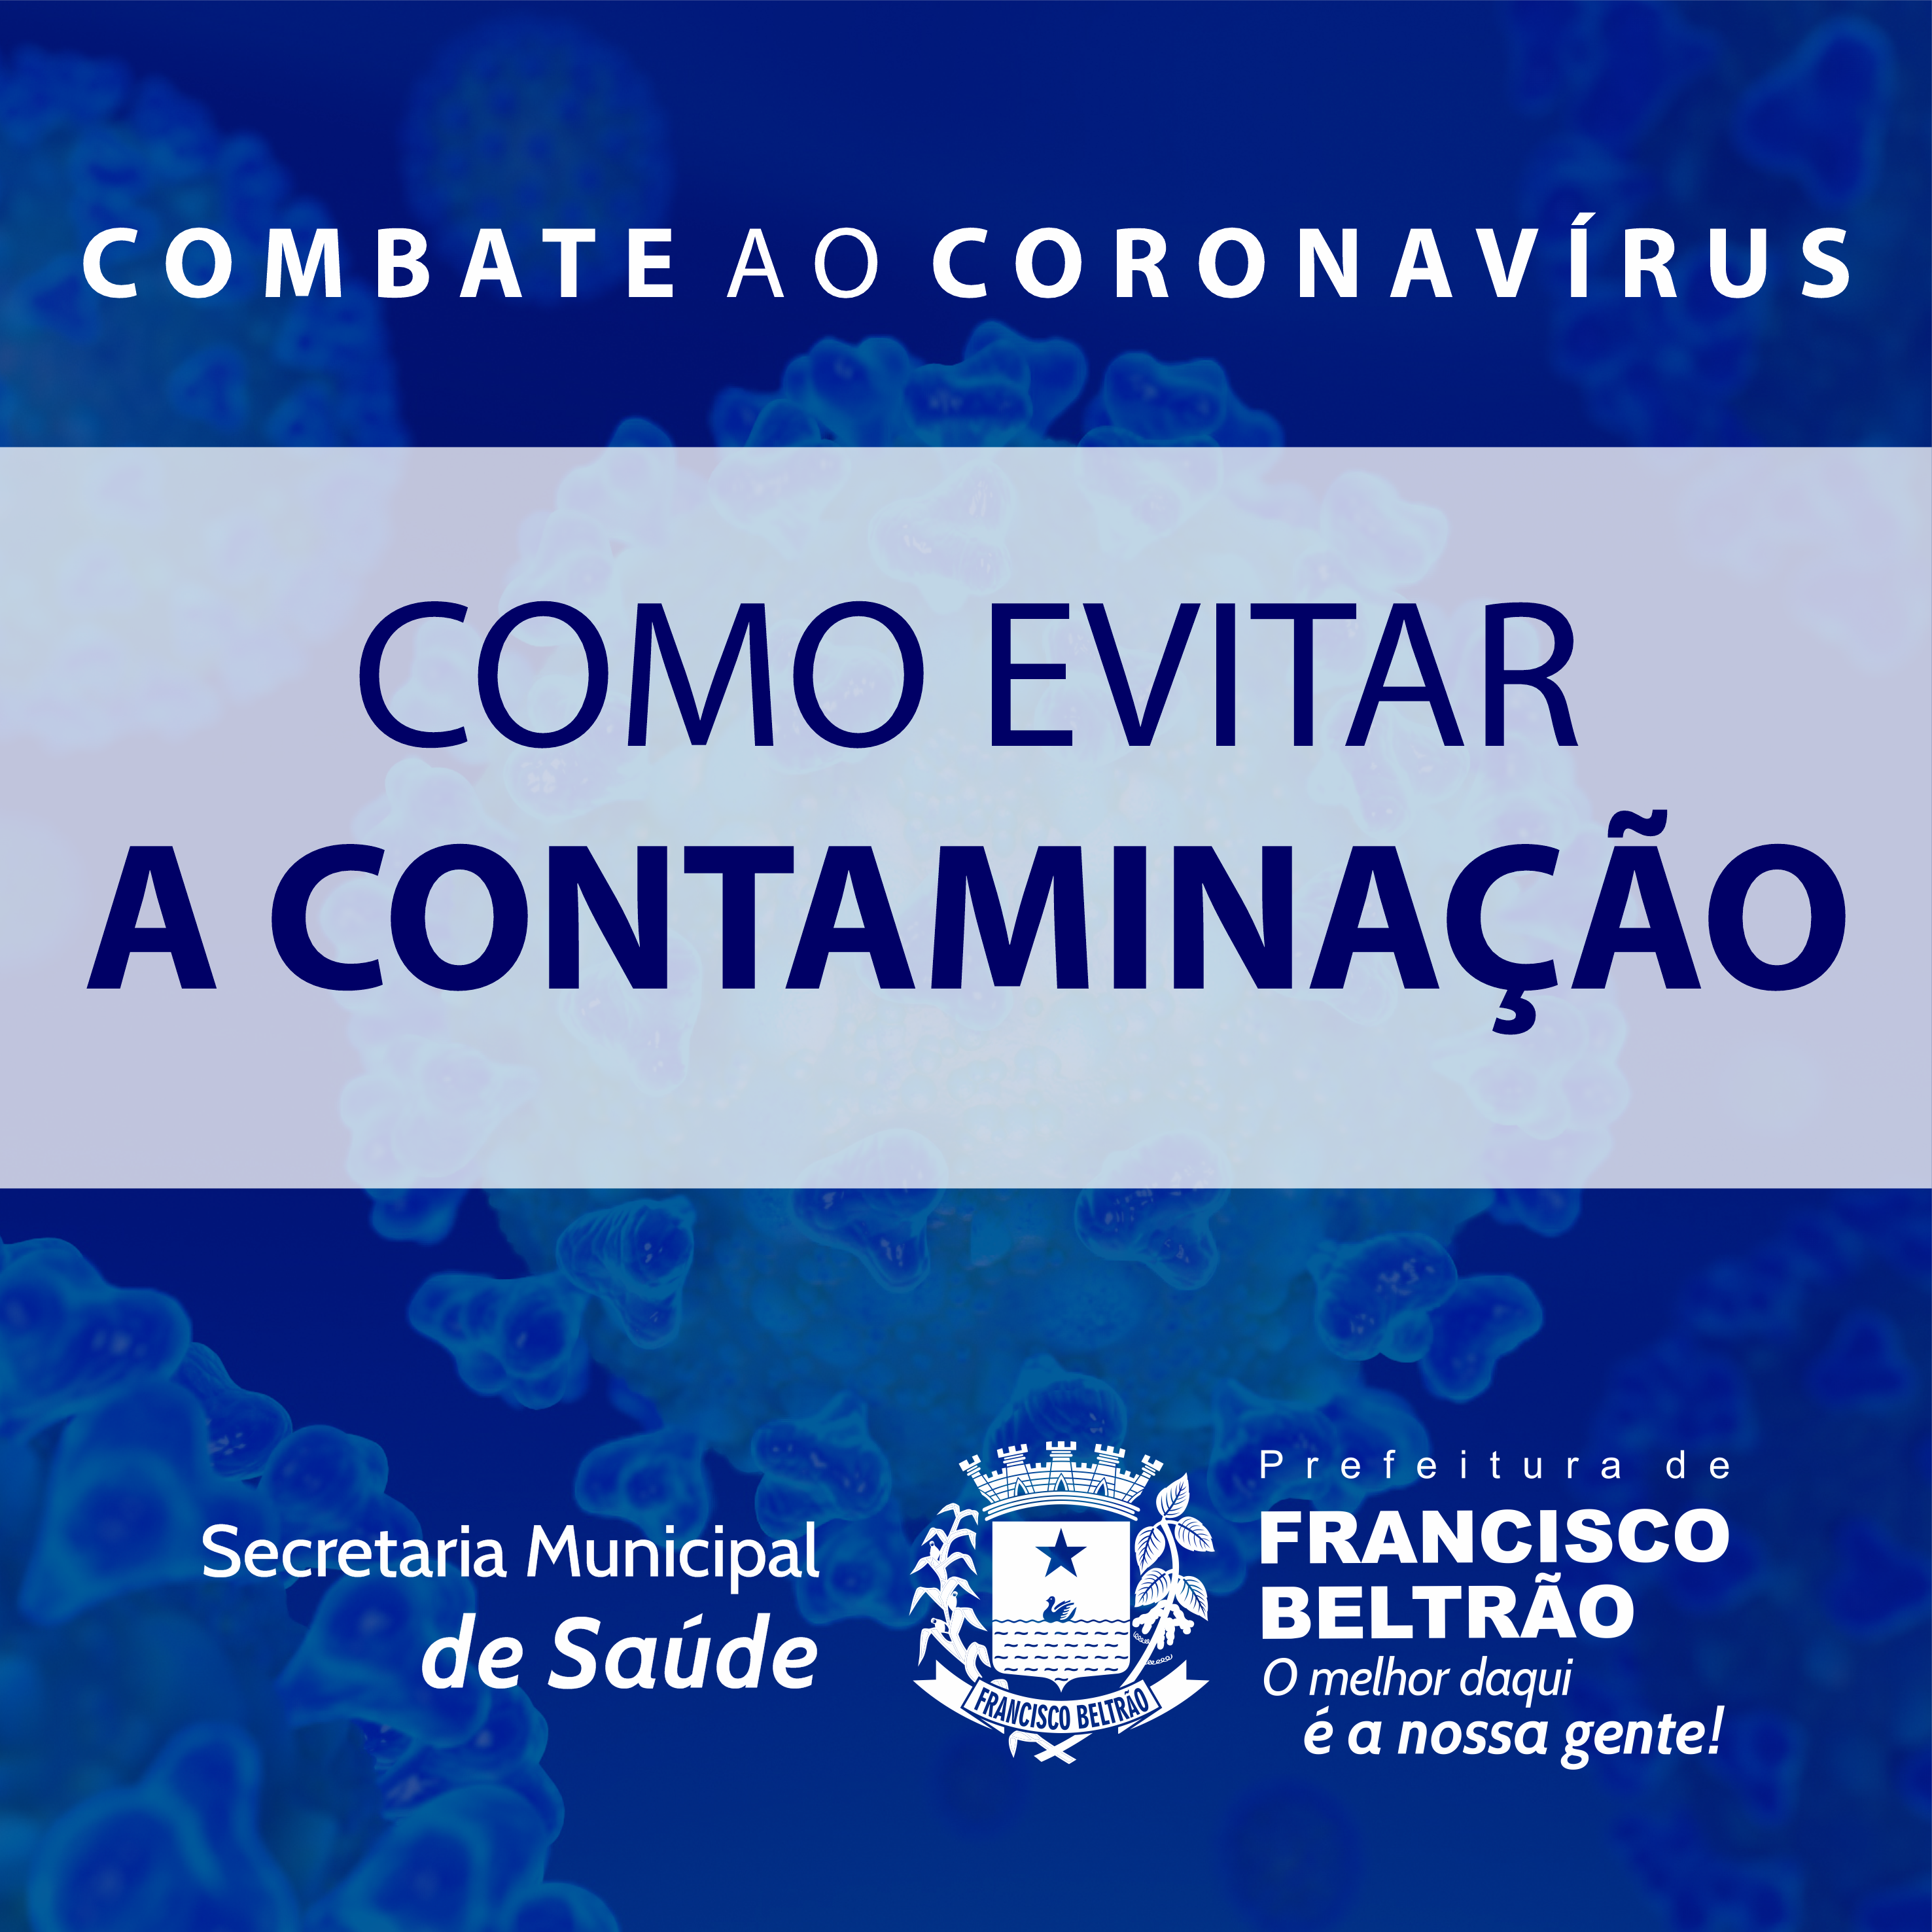 COMO EVITAR A CONTAMINAÇÃO